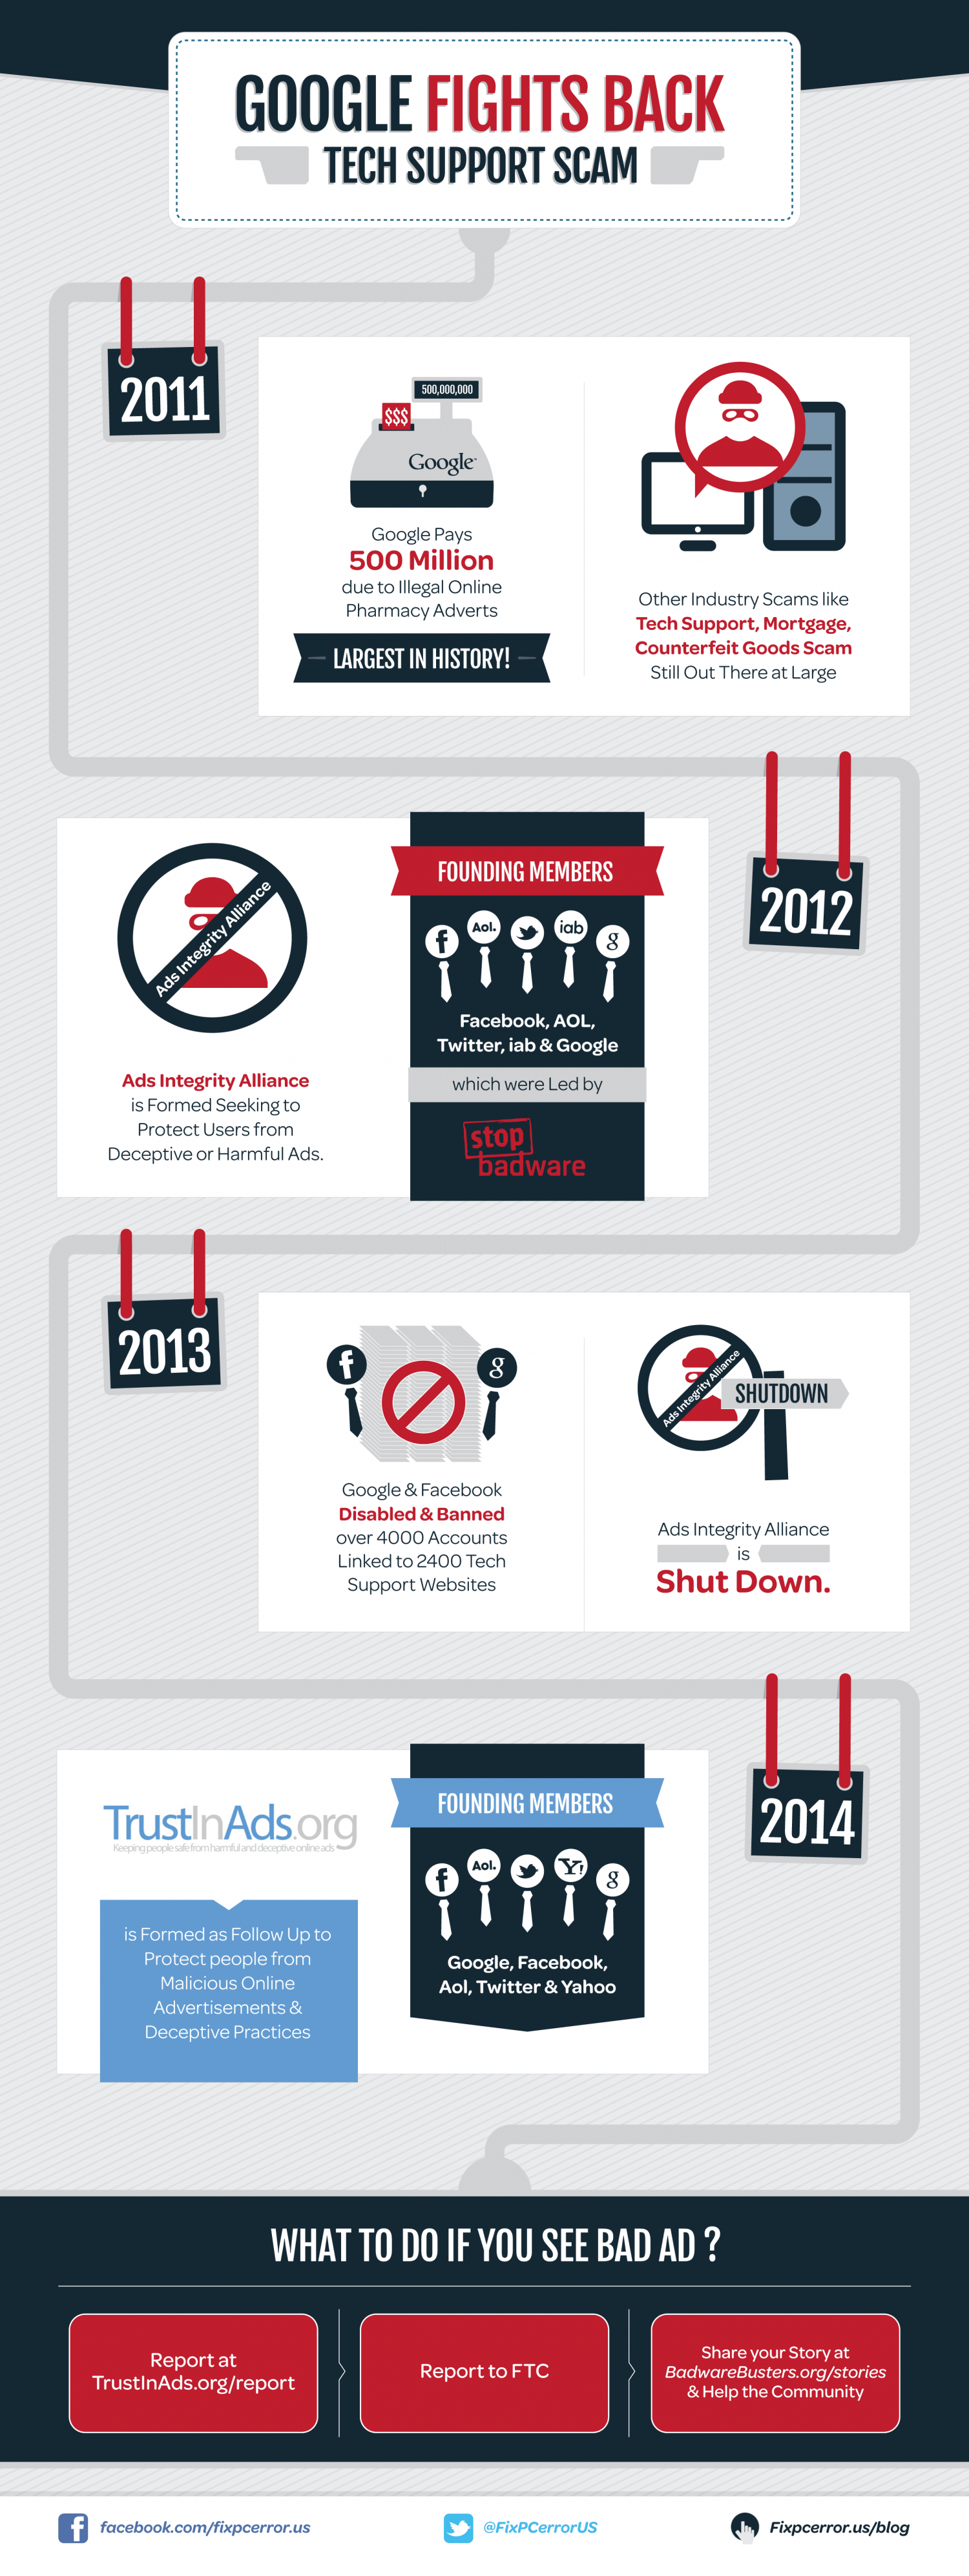 Google Fights Back Tech Support Scam Infographic